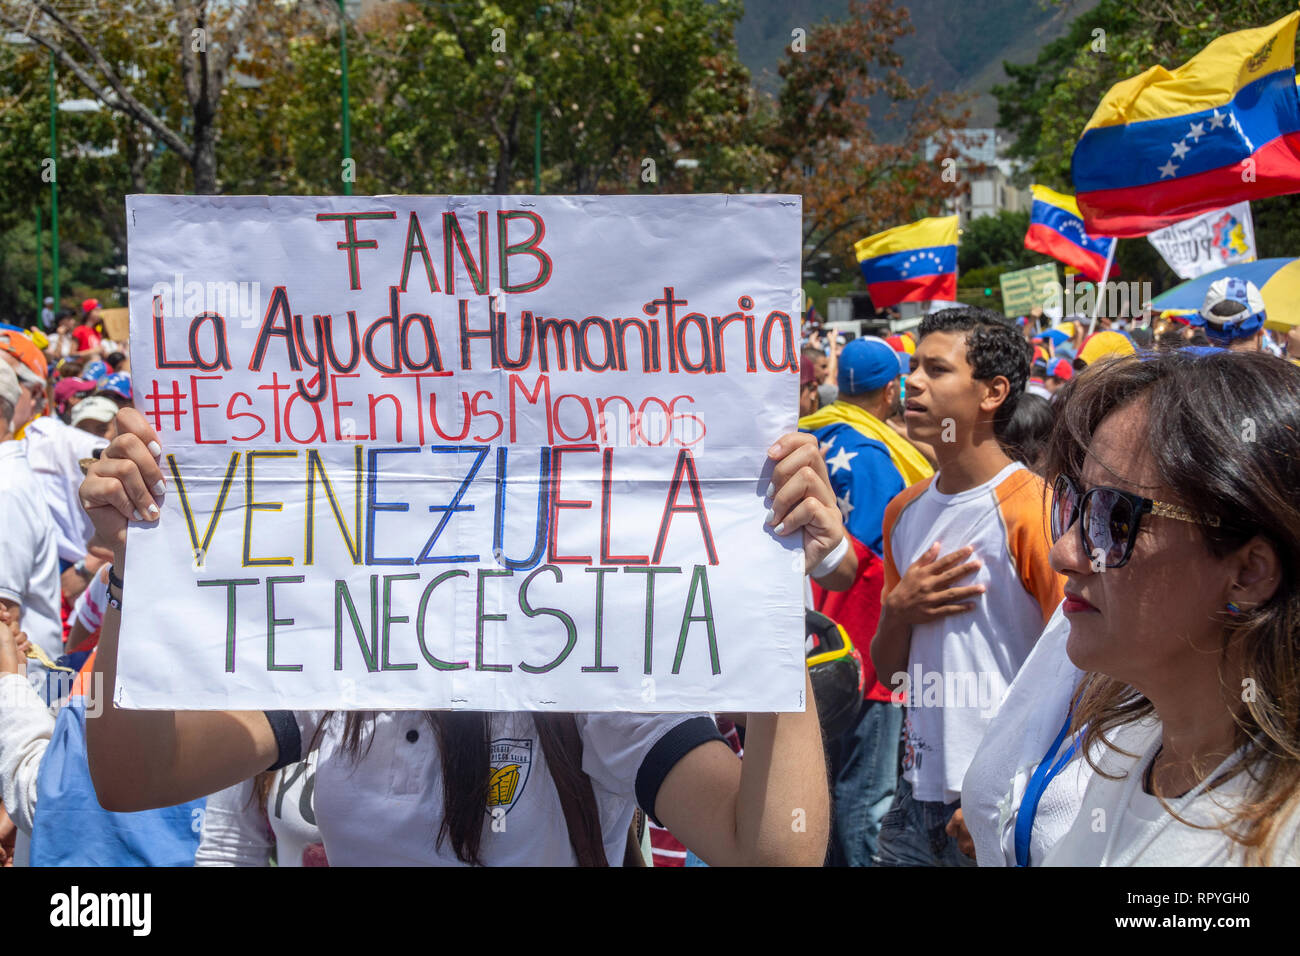 The citizens of Caracas gathered at the La Carlota air base to ask the Armed Forces to allow humanitarian aid into Venezuela and lay down their arms f Stock Photo